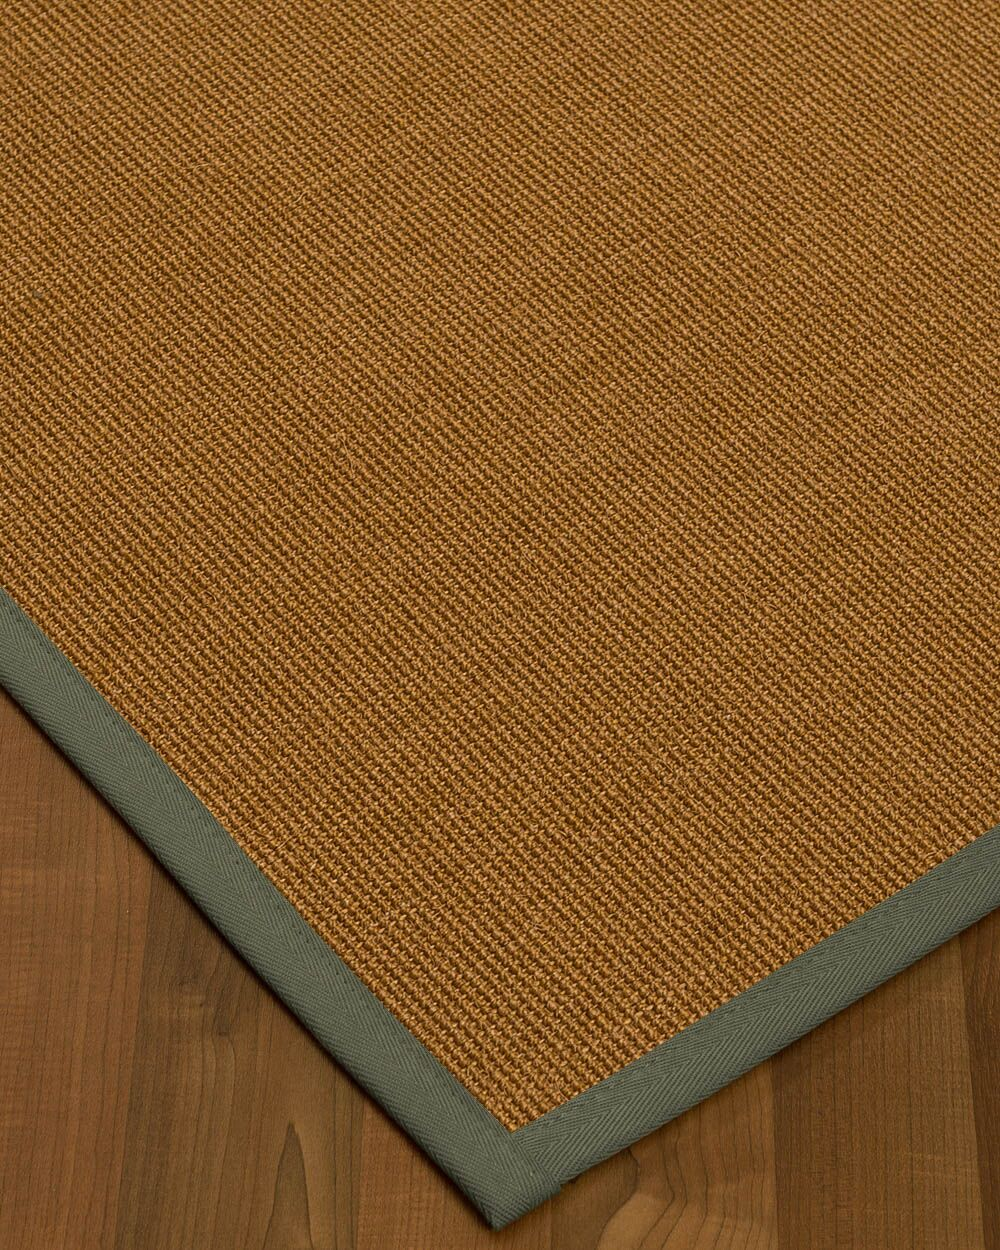 Antonina Border Hand-Woven Brown/Stone Area Rug Rug Size: Rectangle 8' x 10', Rug Pad Included: Yes